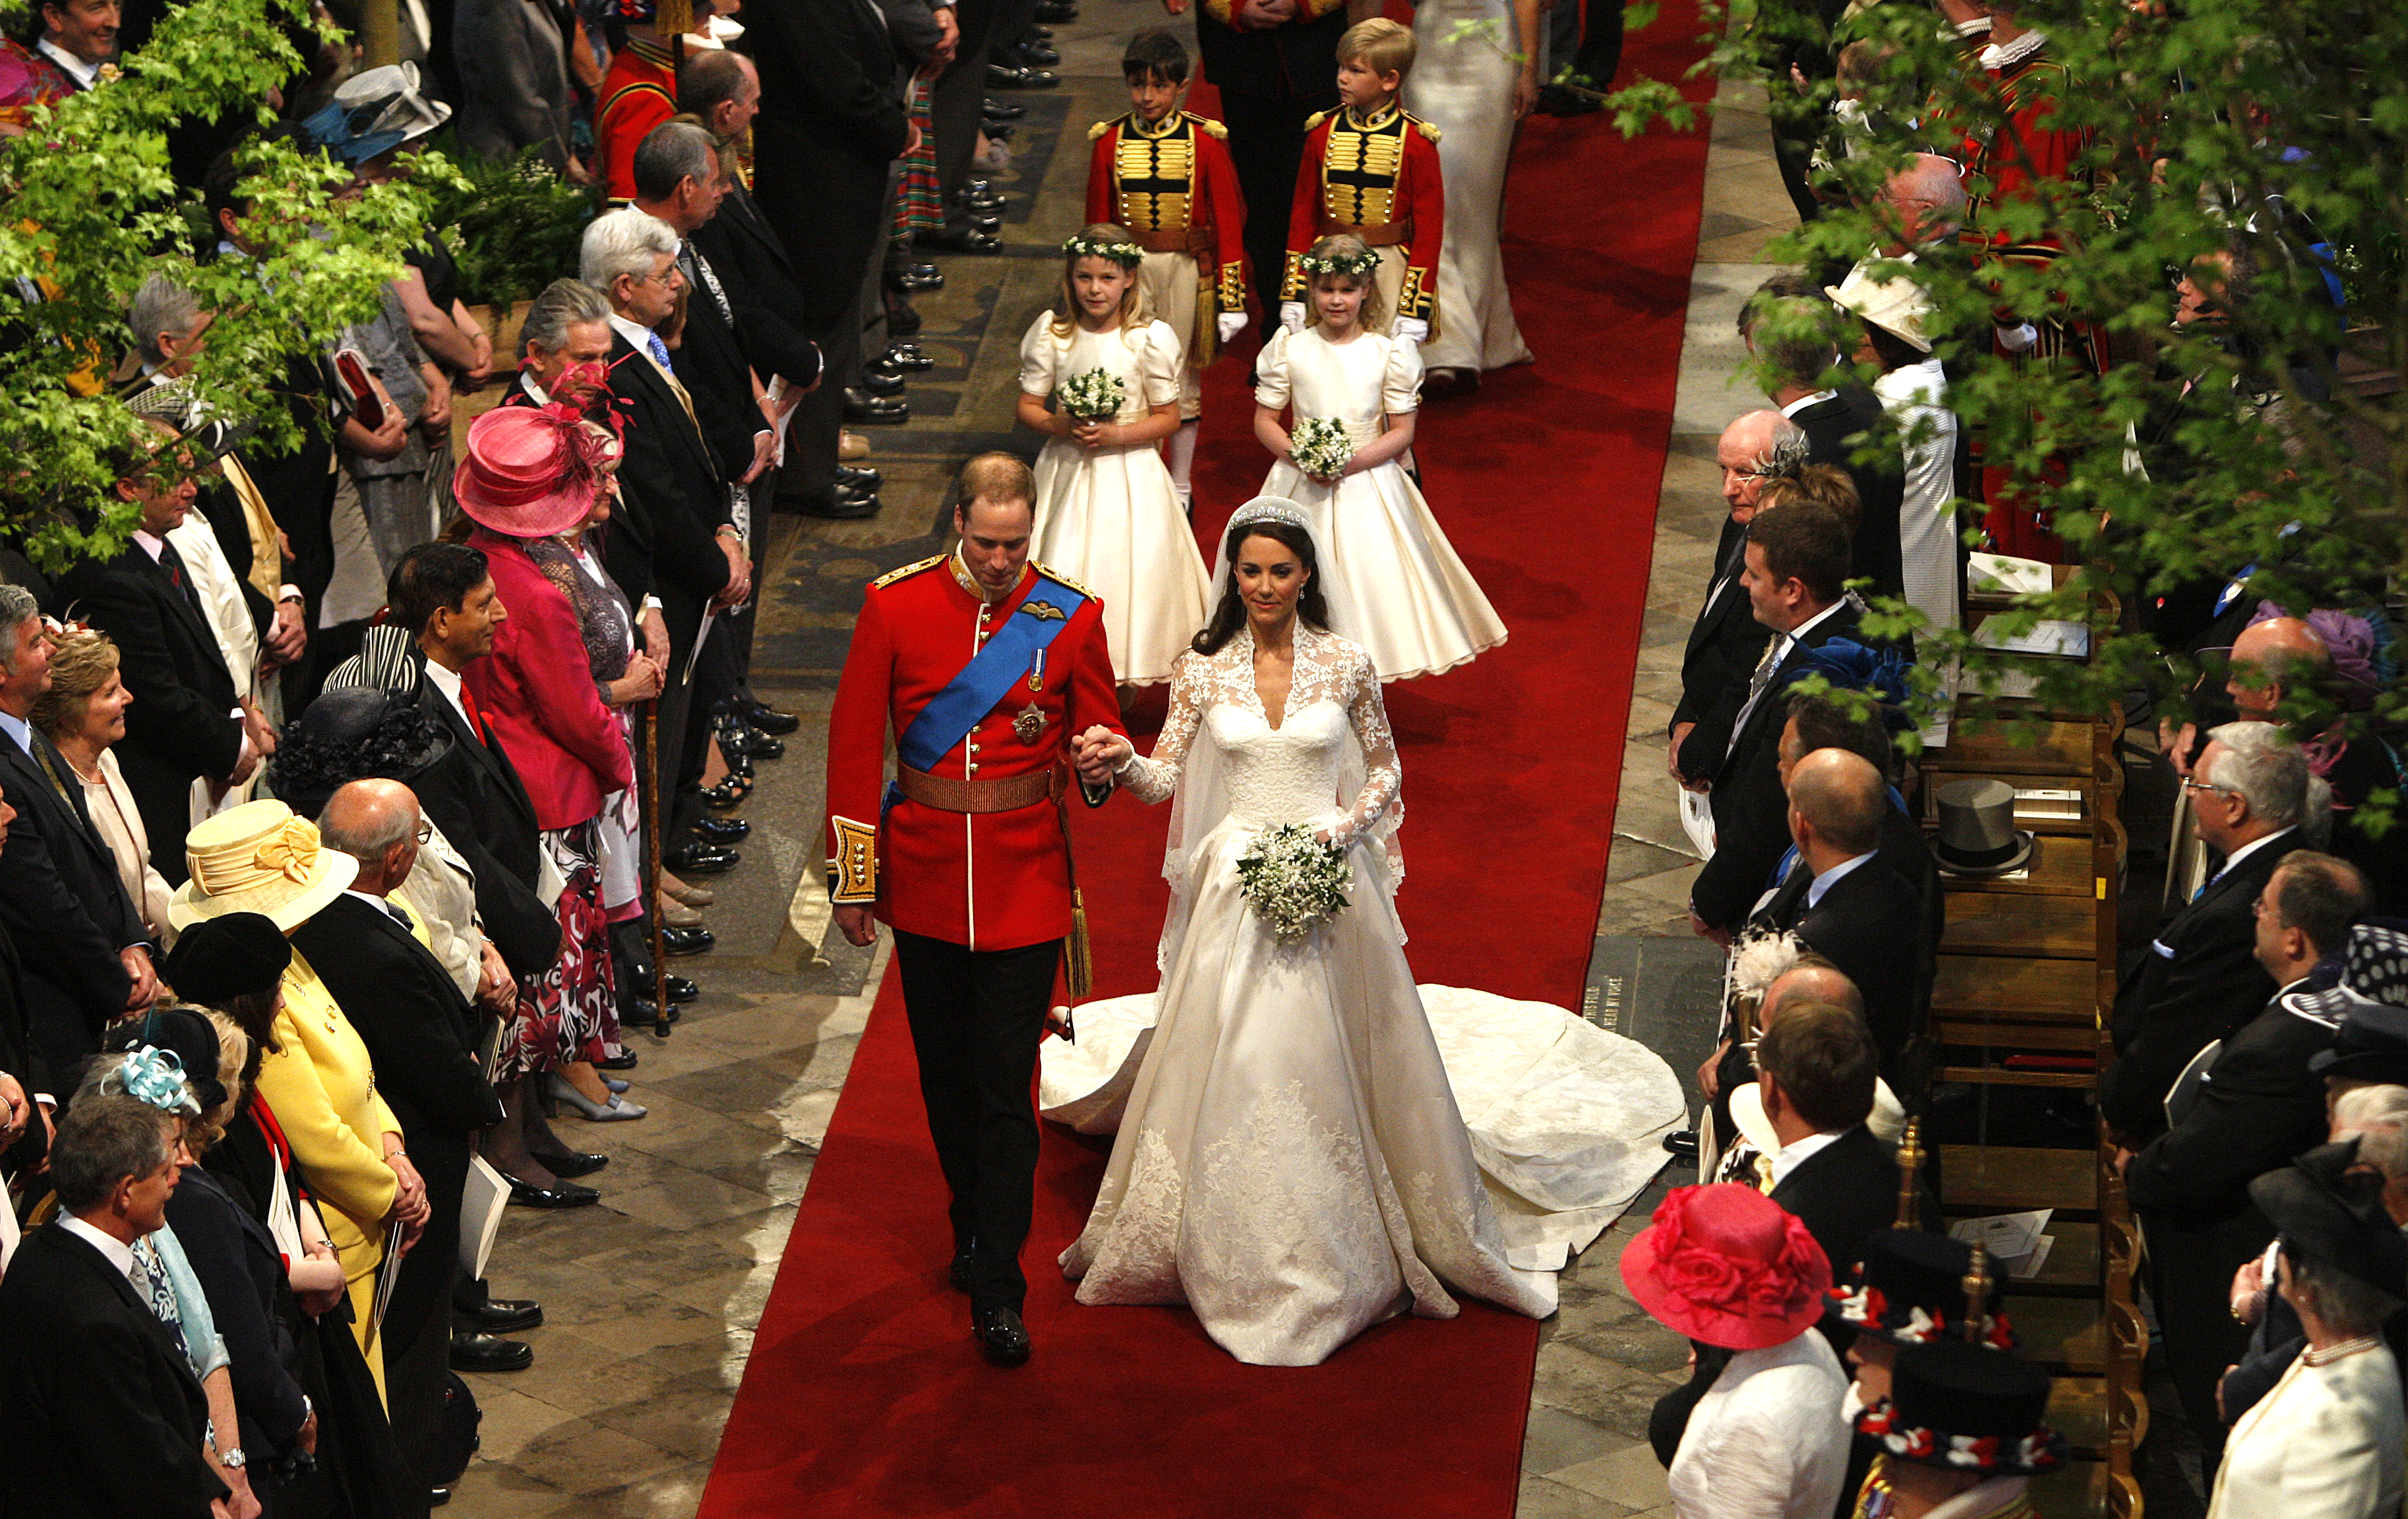 FILE - This April 29, 2011 file photo shows Prince William and Catherine, the Duchess of Cambridge, walking down the aisle at Westminster Abbey following their marriage in central London. Sony Electronics and the Nielsen television research company collaborated on a survey ranking TV's most memorable moments. Other TV events include, the Sept. 11 attacks in 2001, Hurricane Katrina in 2005, the O.J. Simpson murder trial verdict in 1995 and the death of Osama bin Laden in 2011.  (AP Photo/RICHARD POHLE, Pool)